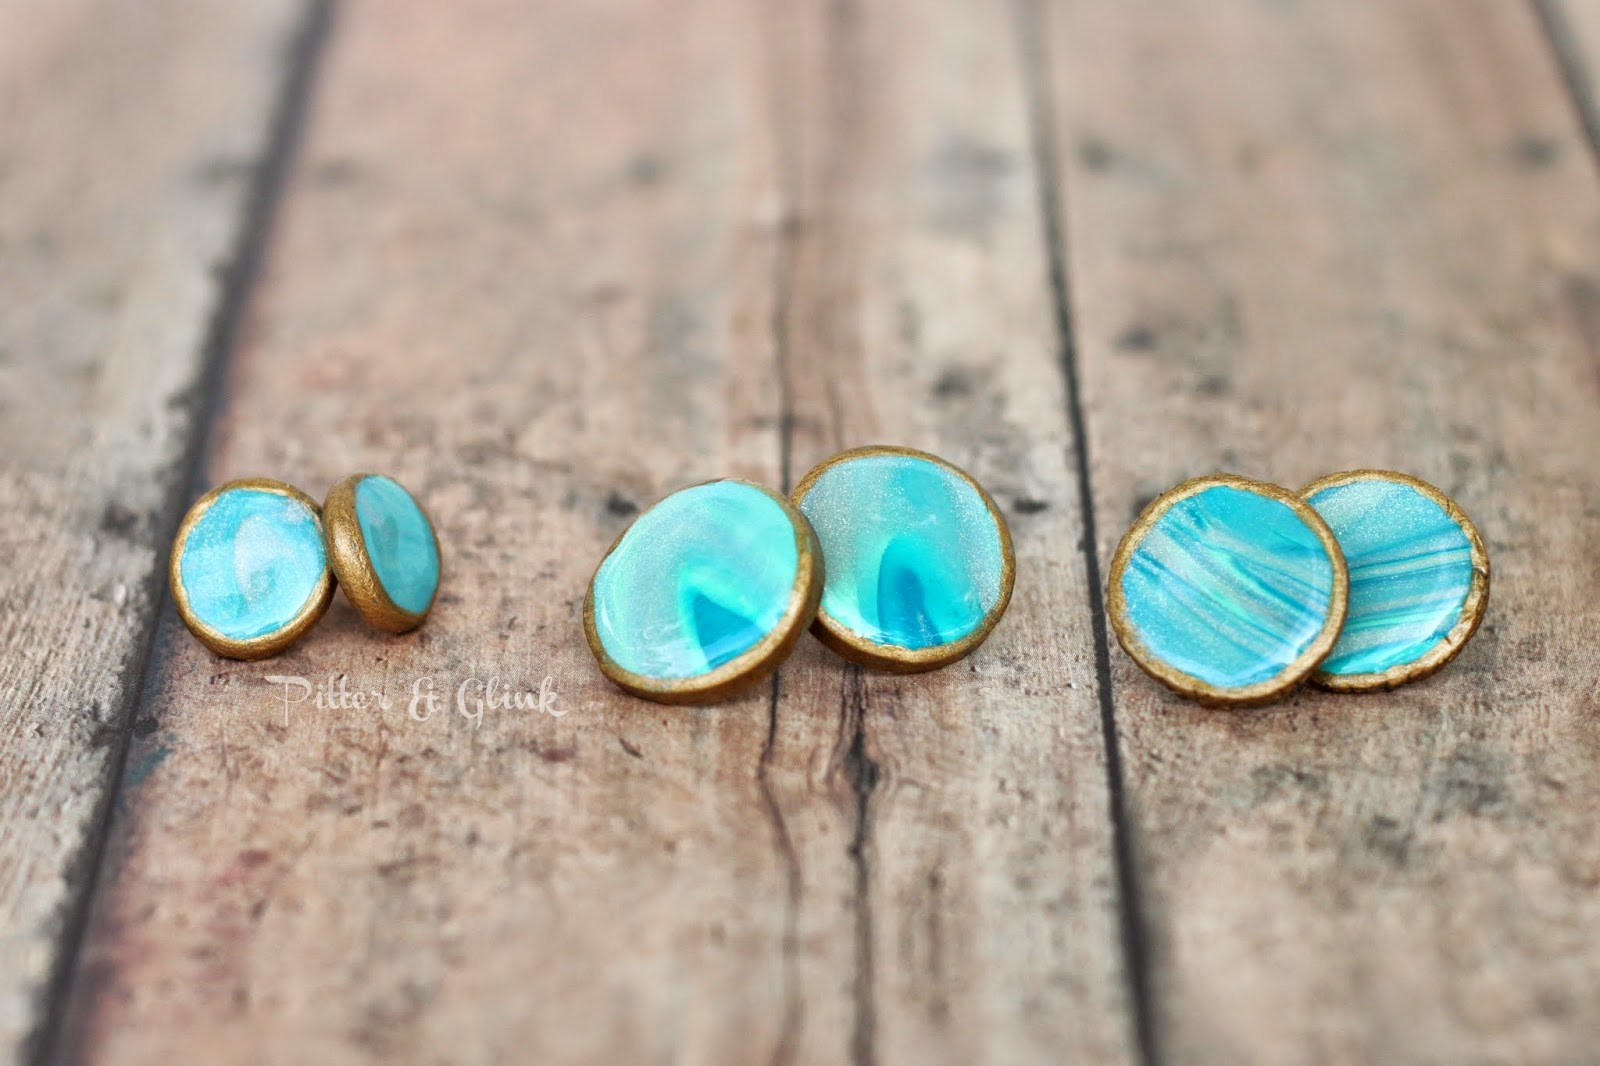 Make beautiful faux agate earrings from polymer clay. pitterandglink.com #diyjewelry #diyearrings #agate